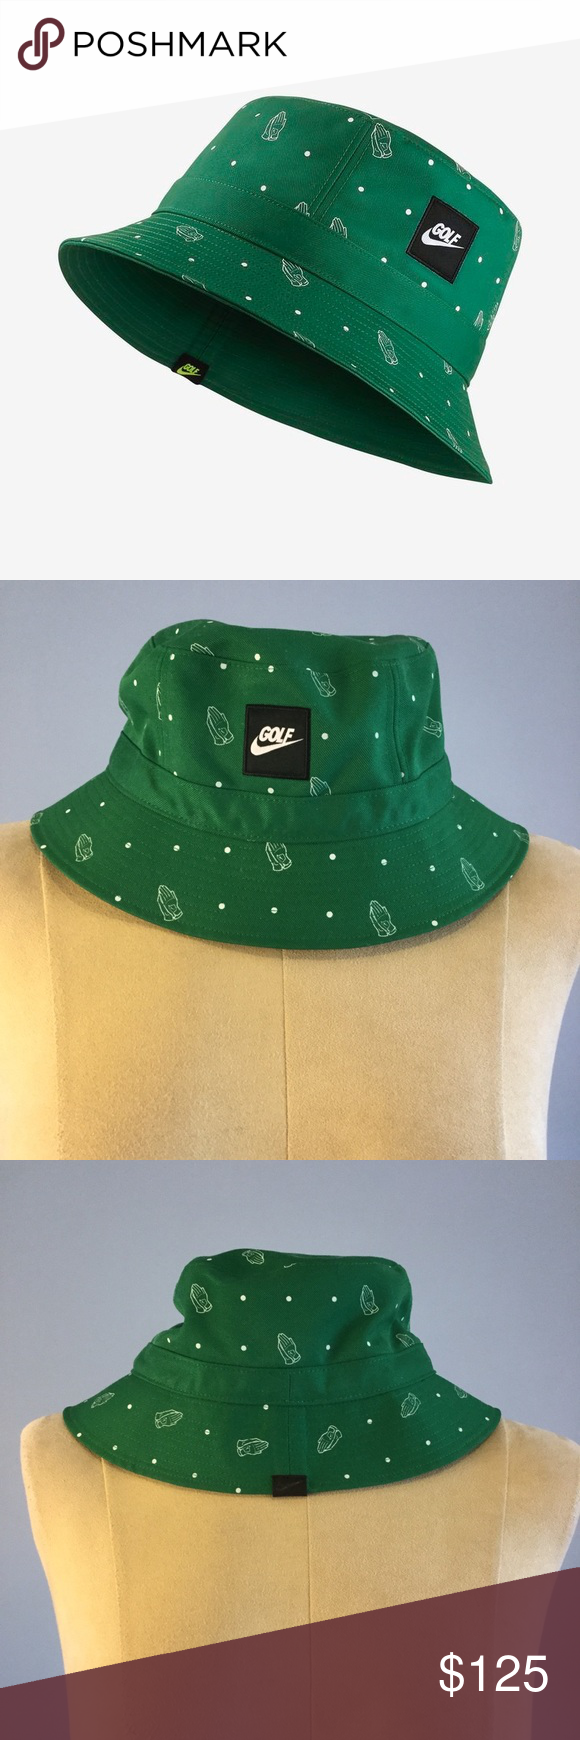 c086241de59 Rare Nike Golf M L Green Praying Hands Bucket Hat Rare Nike Golf Clapping  Praying